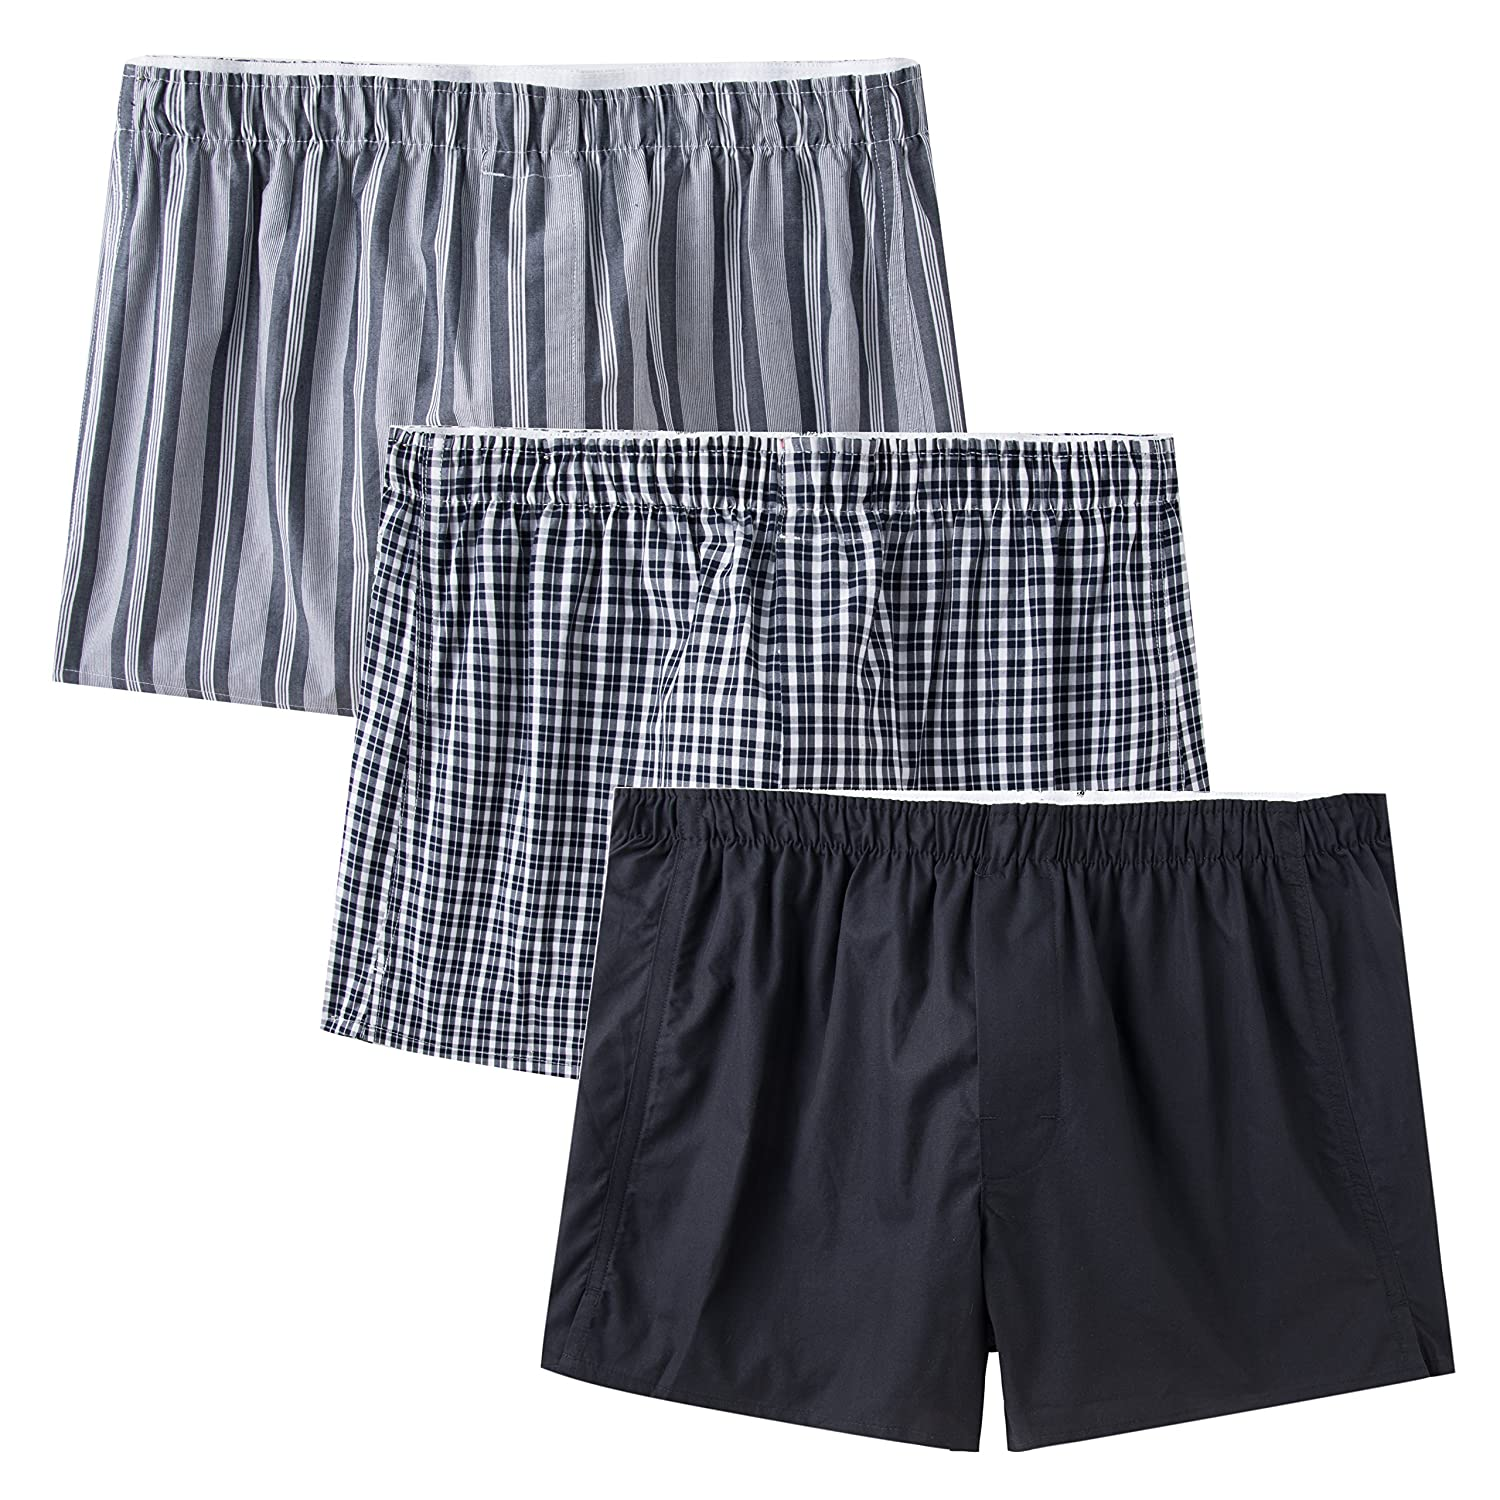 CYZ Men's 100% Cotton Premium Classic Woven Boxers 3 Packs